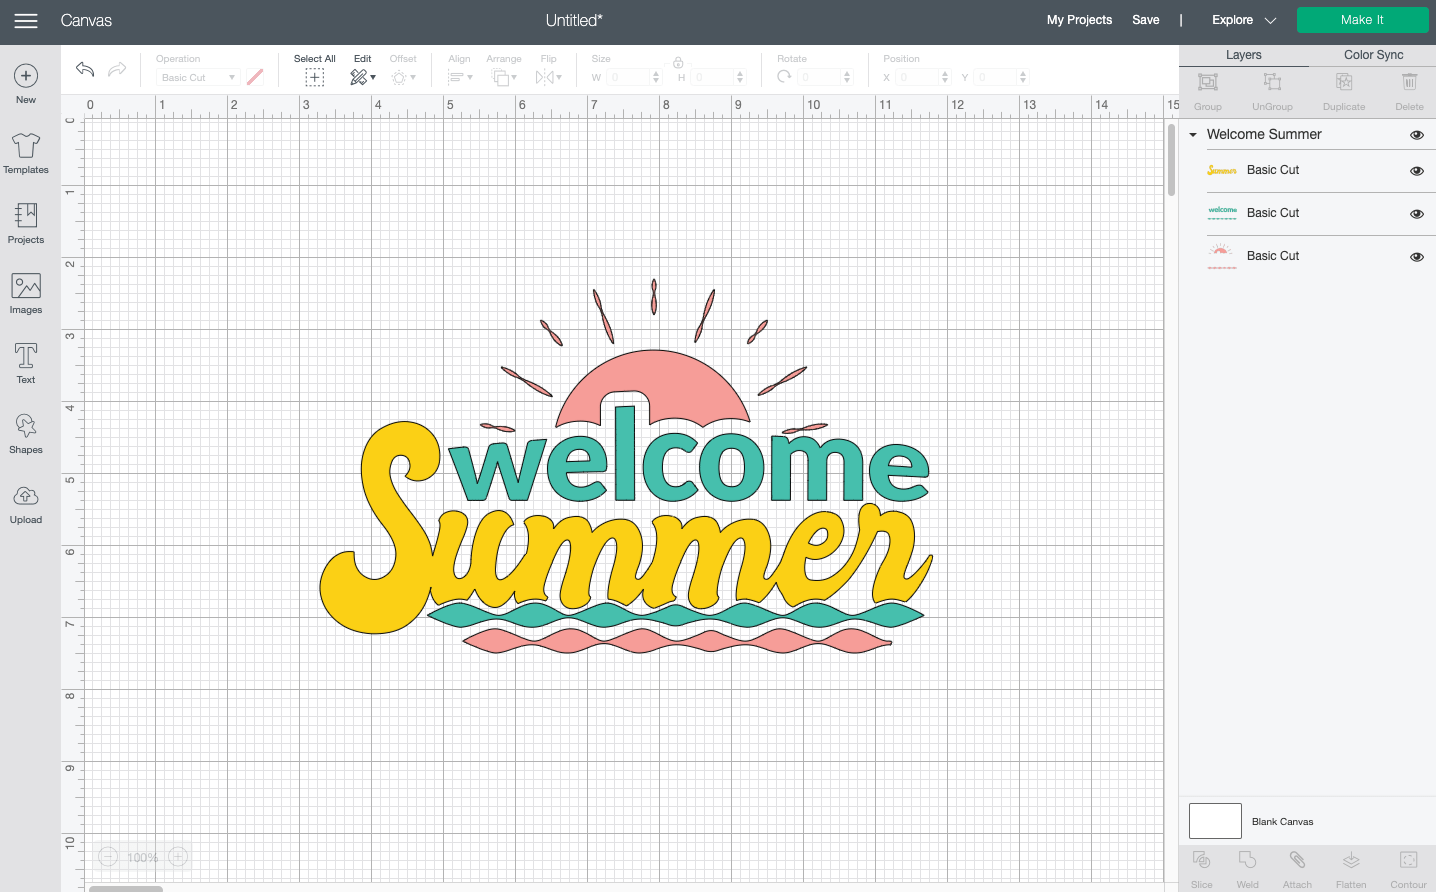 Cricut Design Space: Welcome Summer image in Canvas